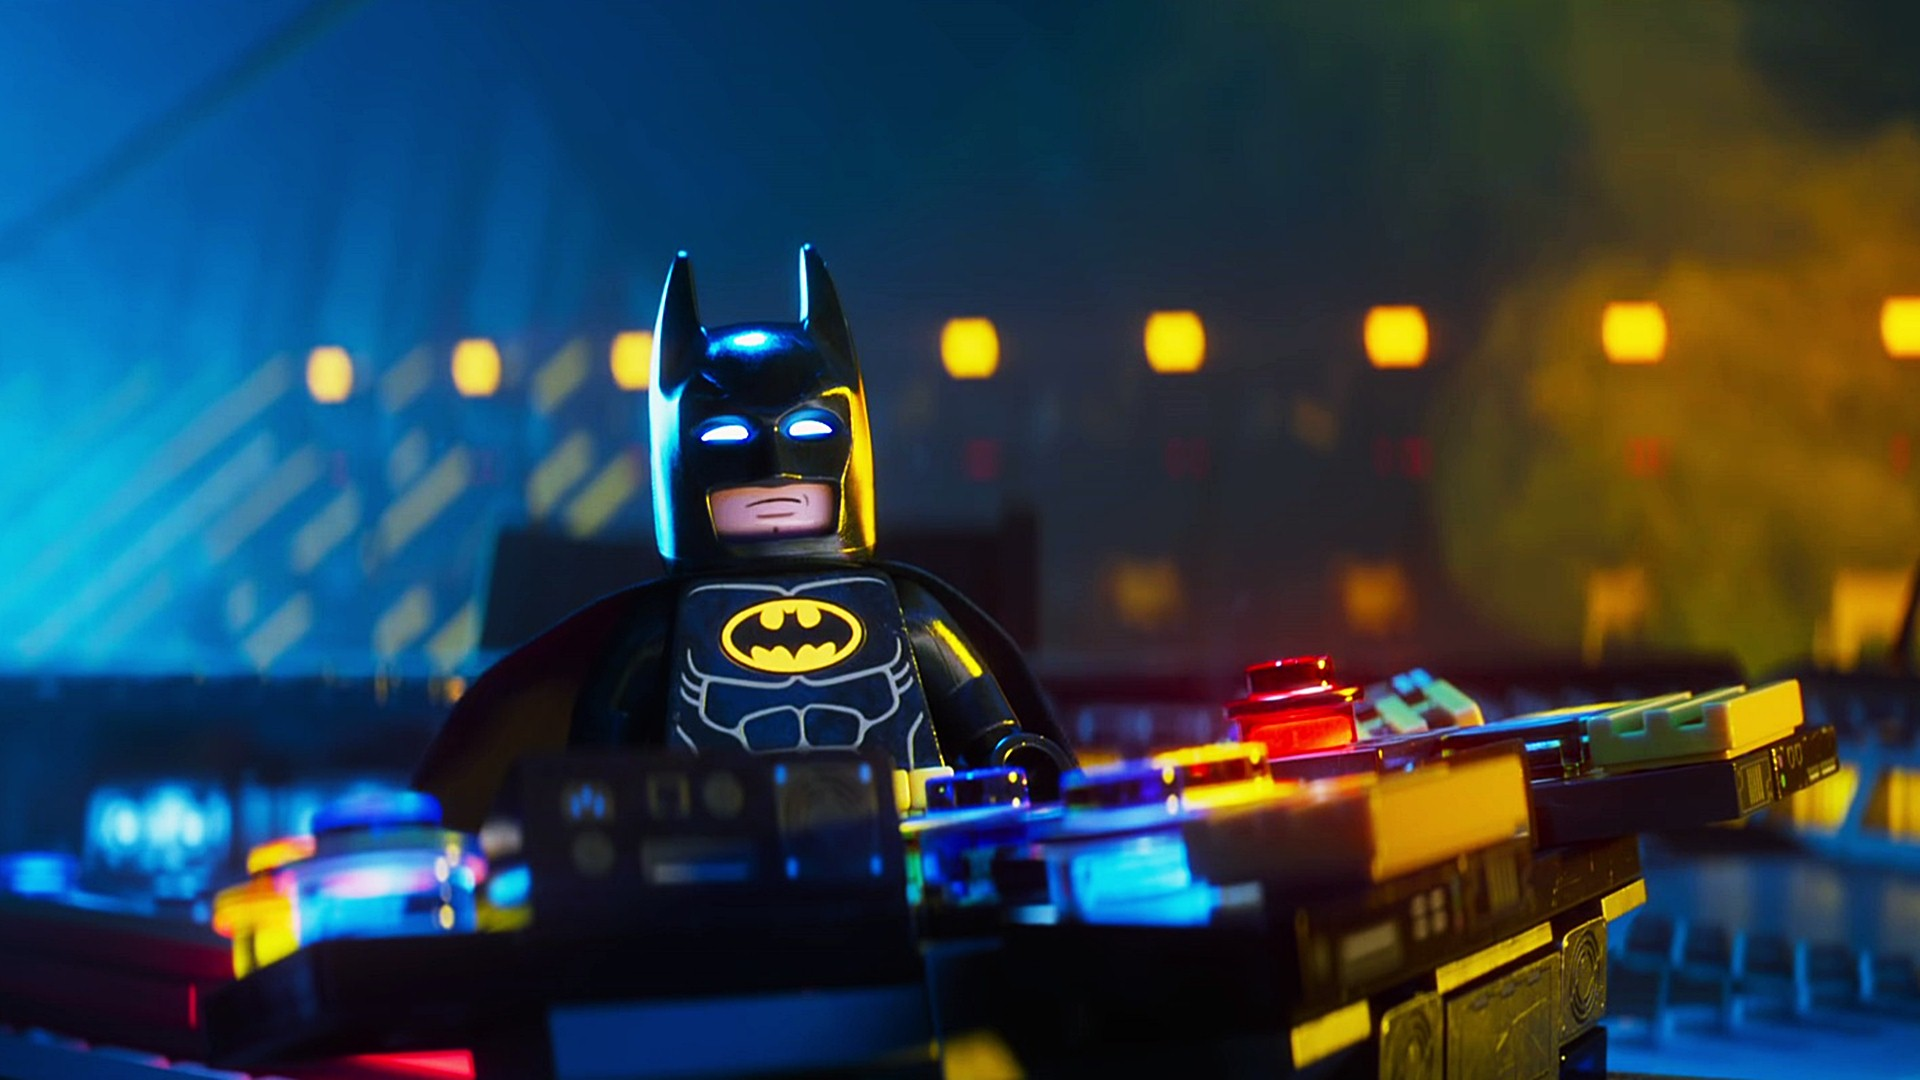 3d Wallpapers For Pc 1920x1080 Free Download Lego Batman Wallpaper Hd Pixelstalk Net